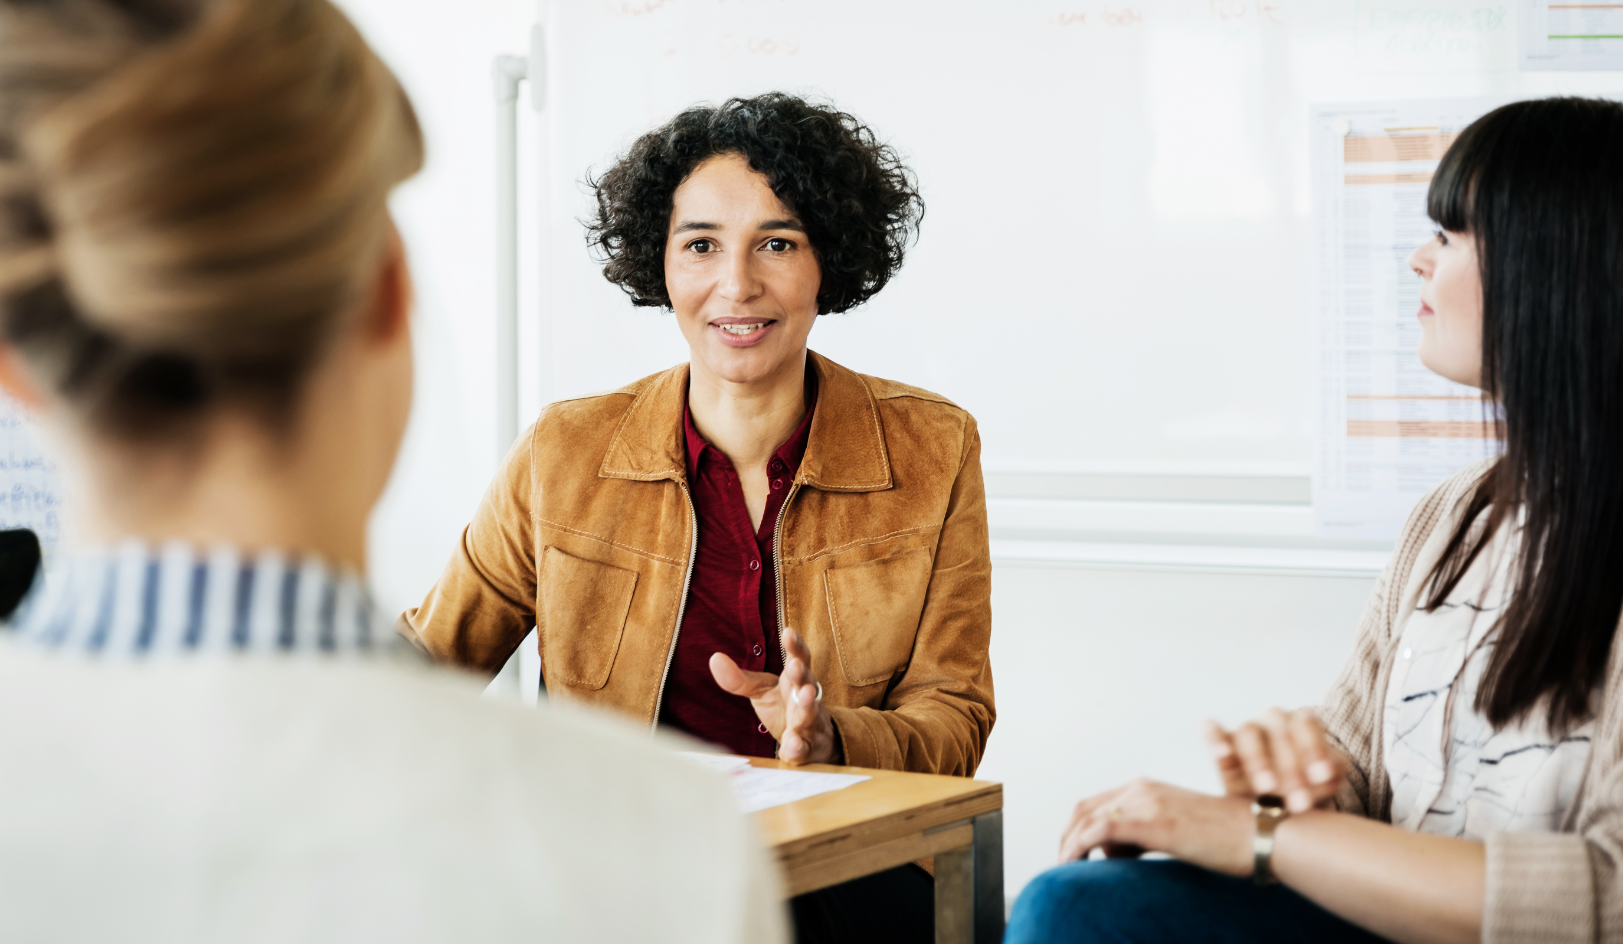 Middle aged woman in a conference room setting speaking with two other women.